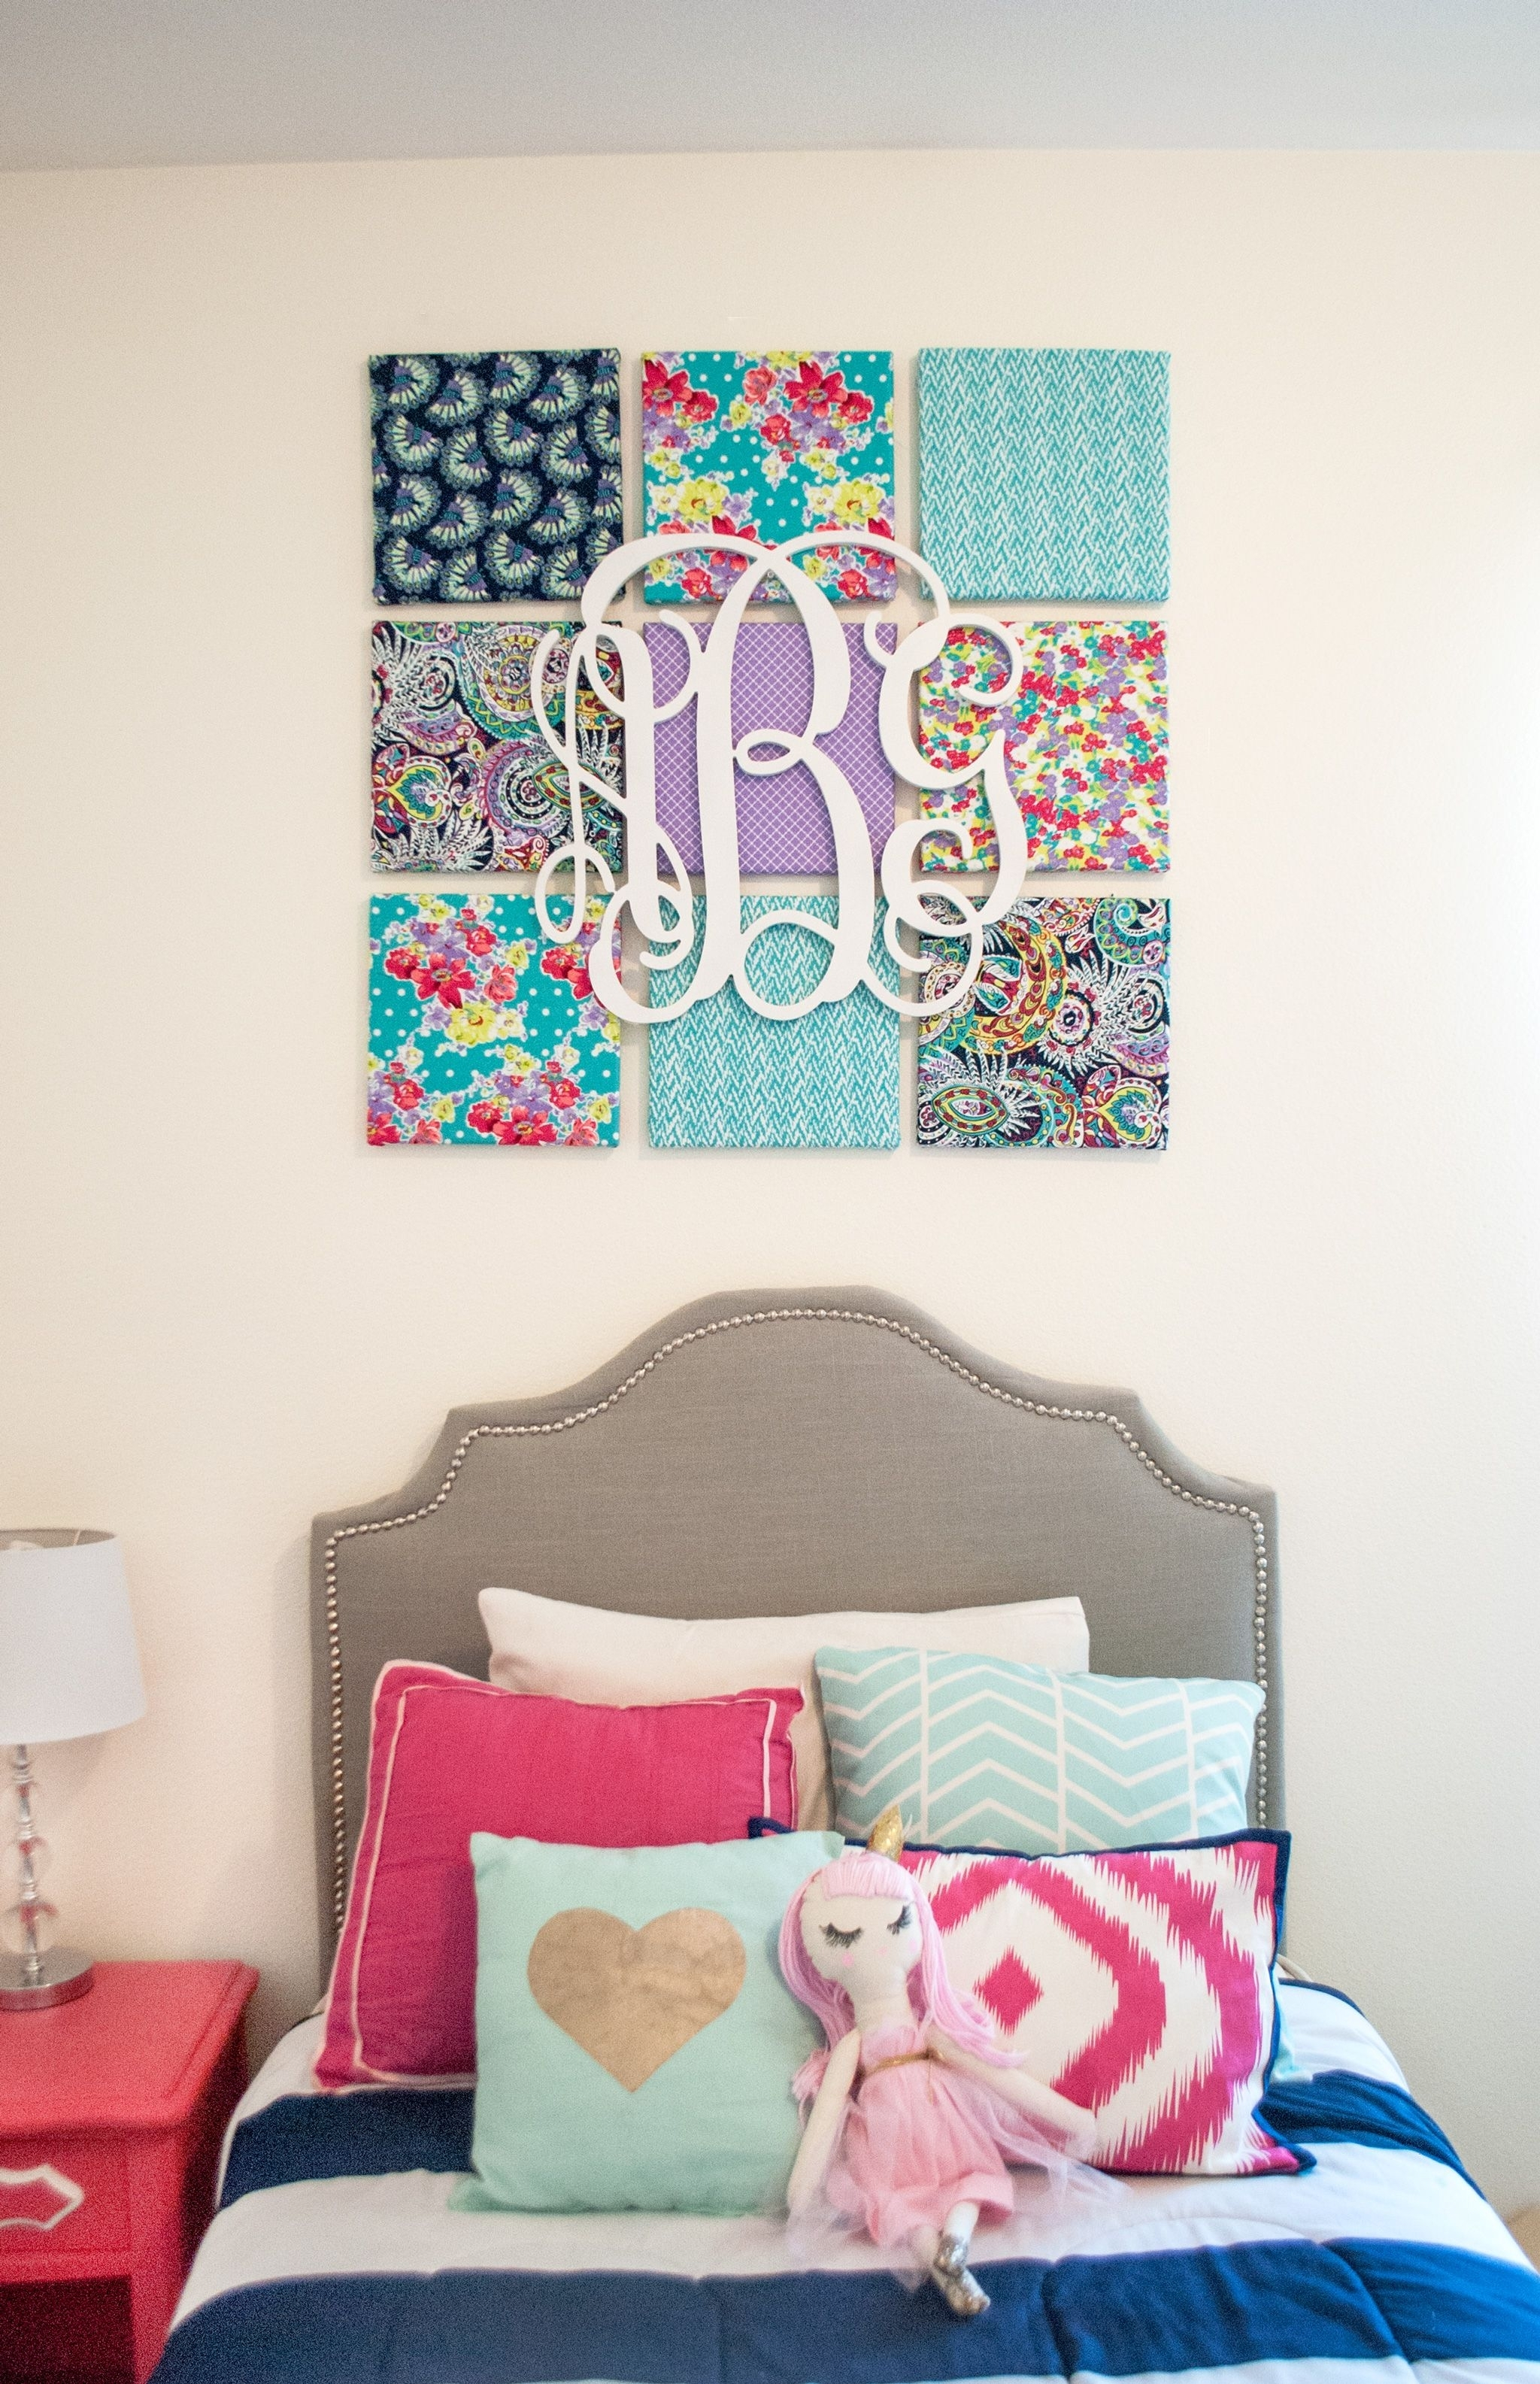 Diy Fabric Wall Art | Monogram Wall, Kids Rooms And Monograms With Regard To Latest Diy Fabric Wall Art (View 8 of 15)